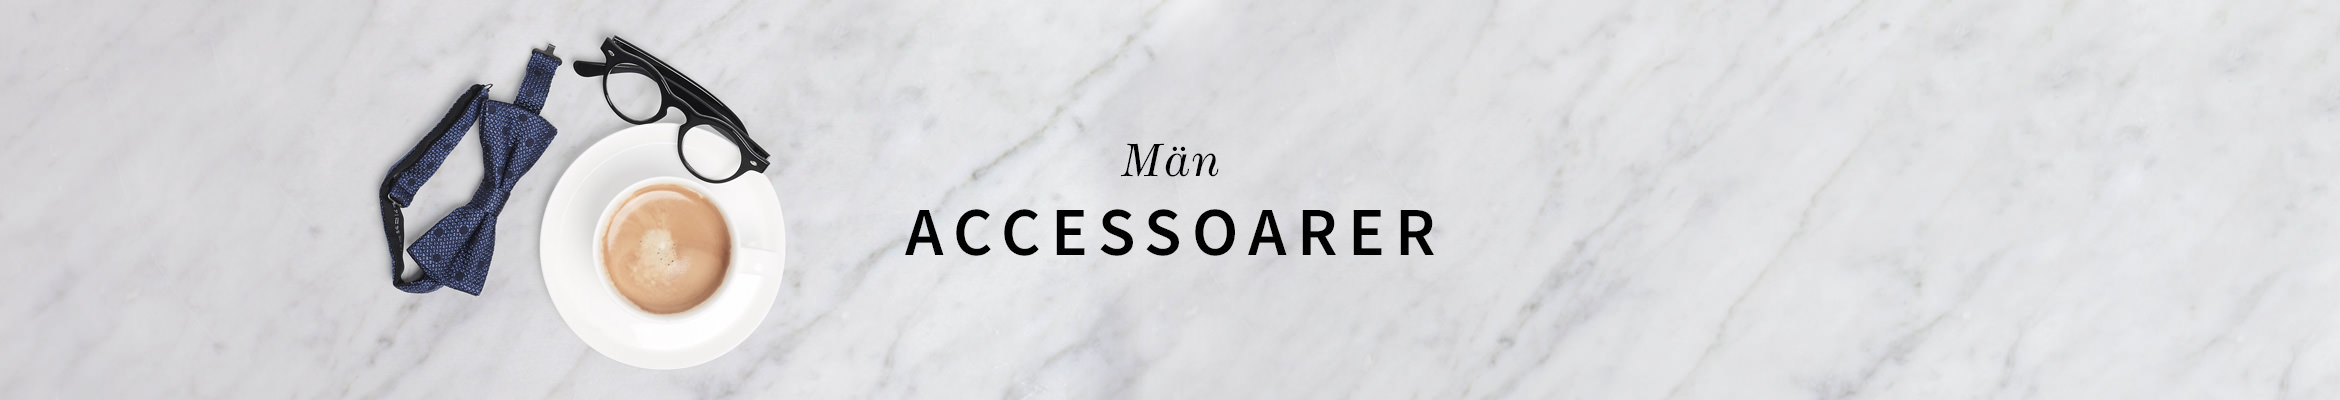 Aw16_accessories_m_sv